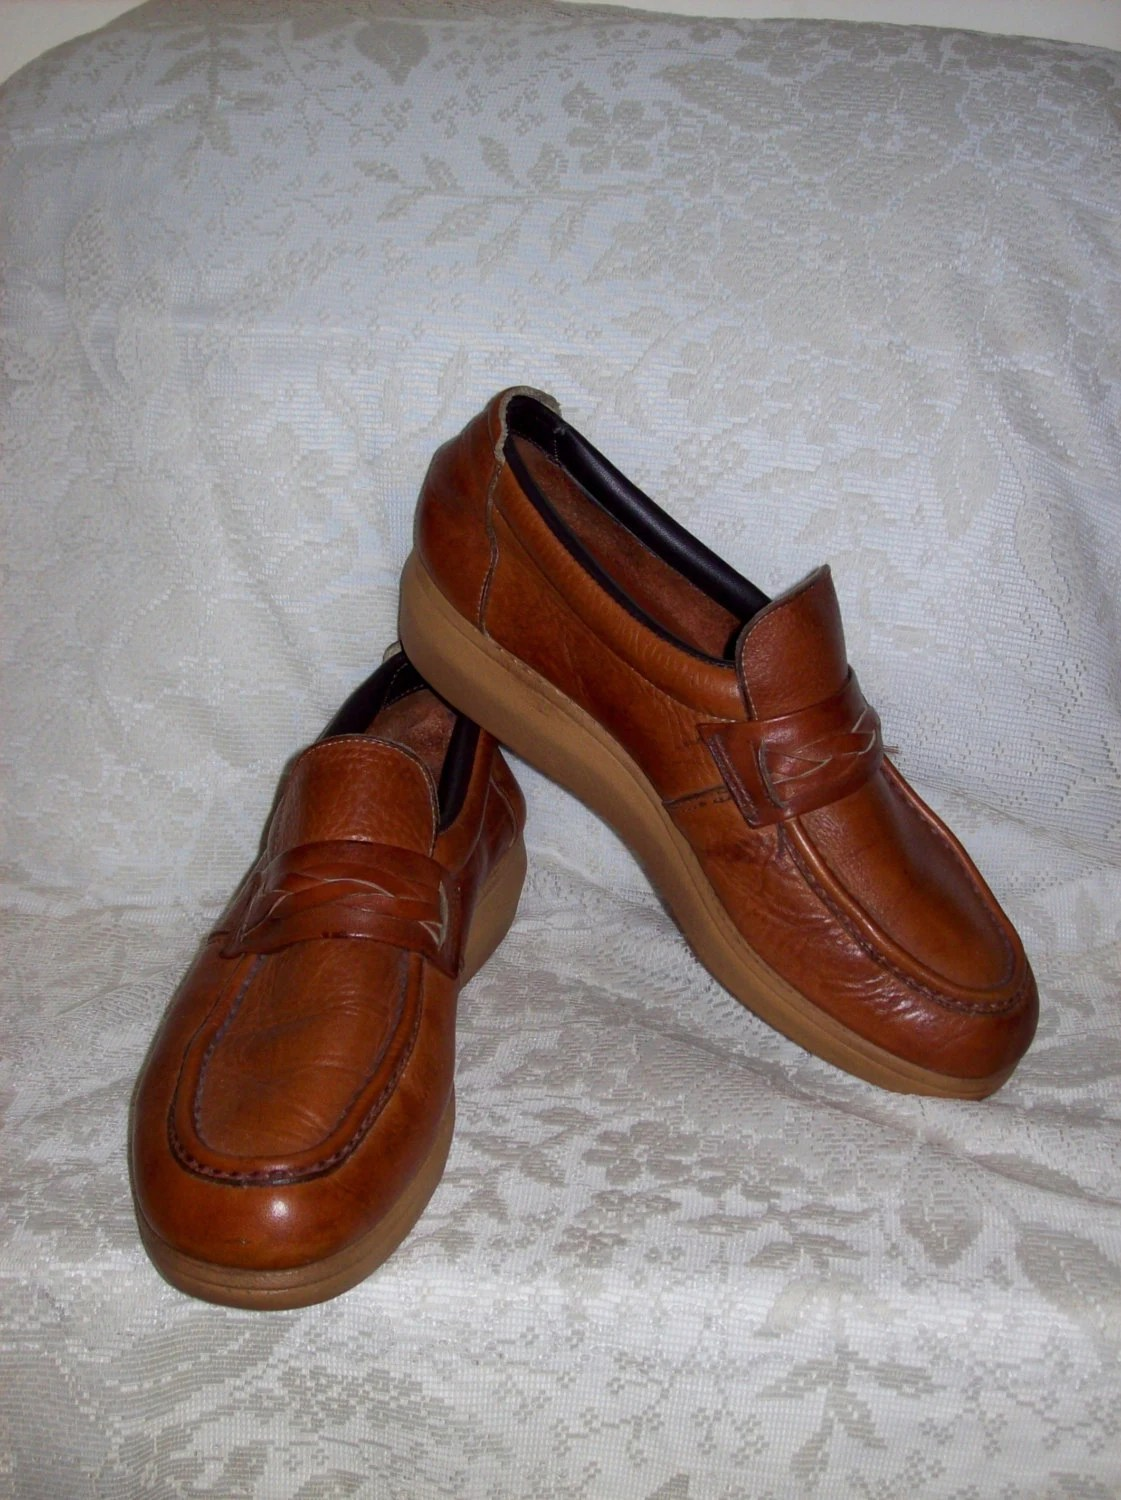 Vintage 1970s Men S Leather Shoes By Dex Size 8 1 2 Only 8